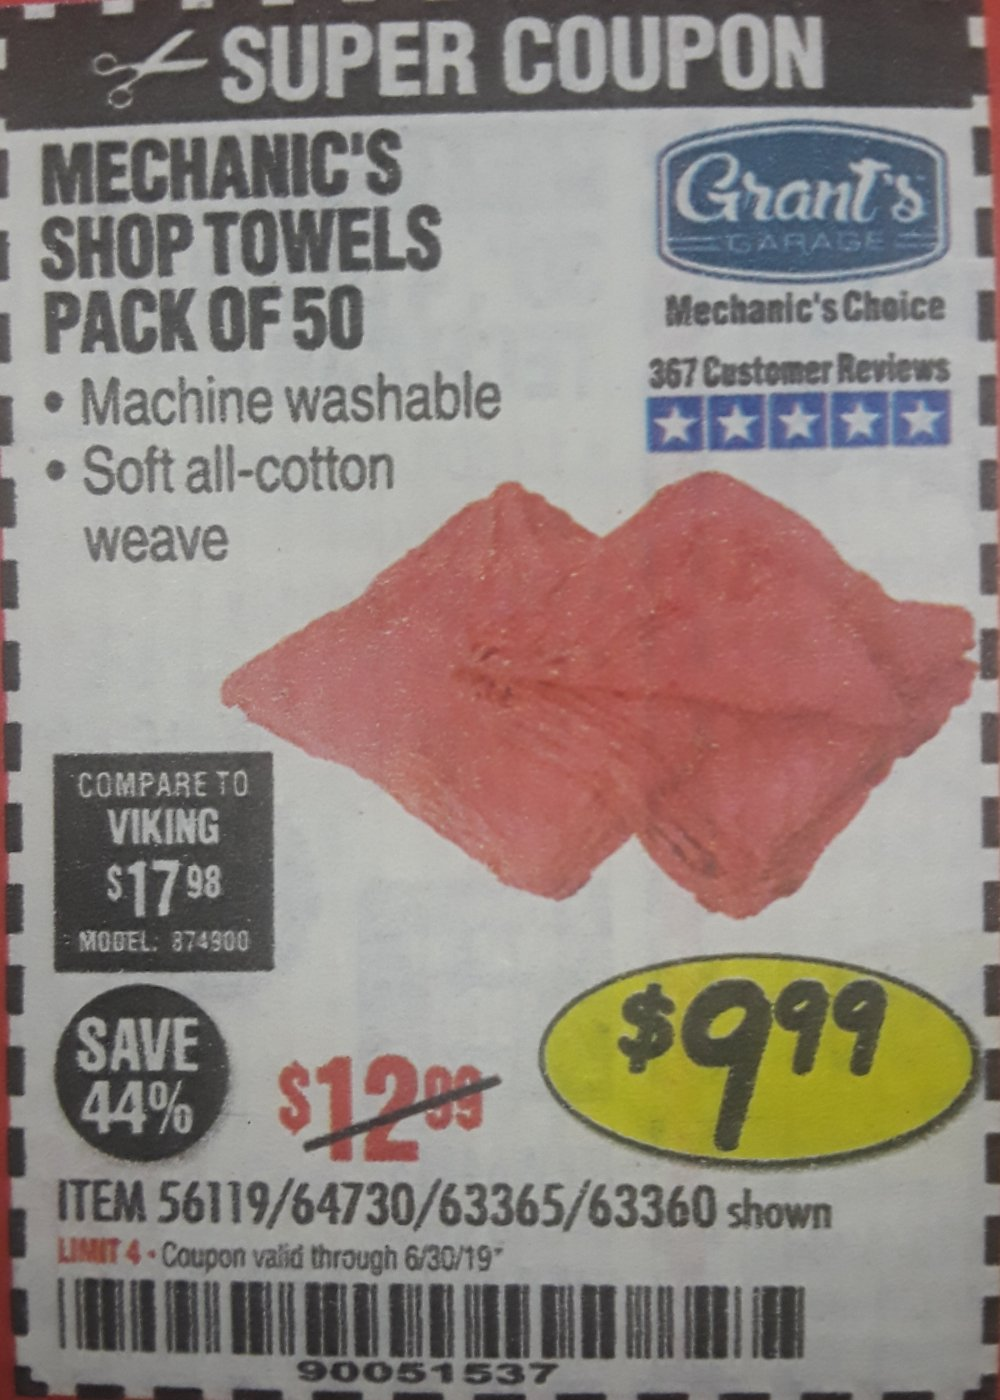 Harbor Freight Coupon, HF Coupons - Mechanics Shop Towels